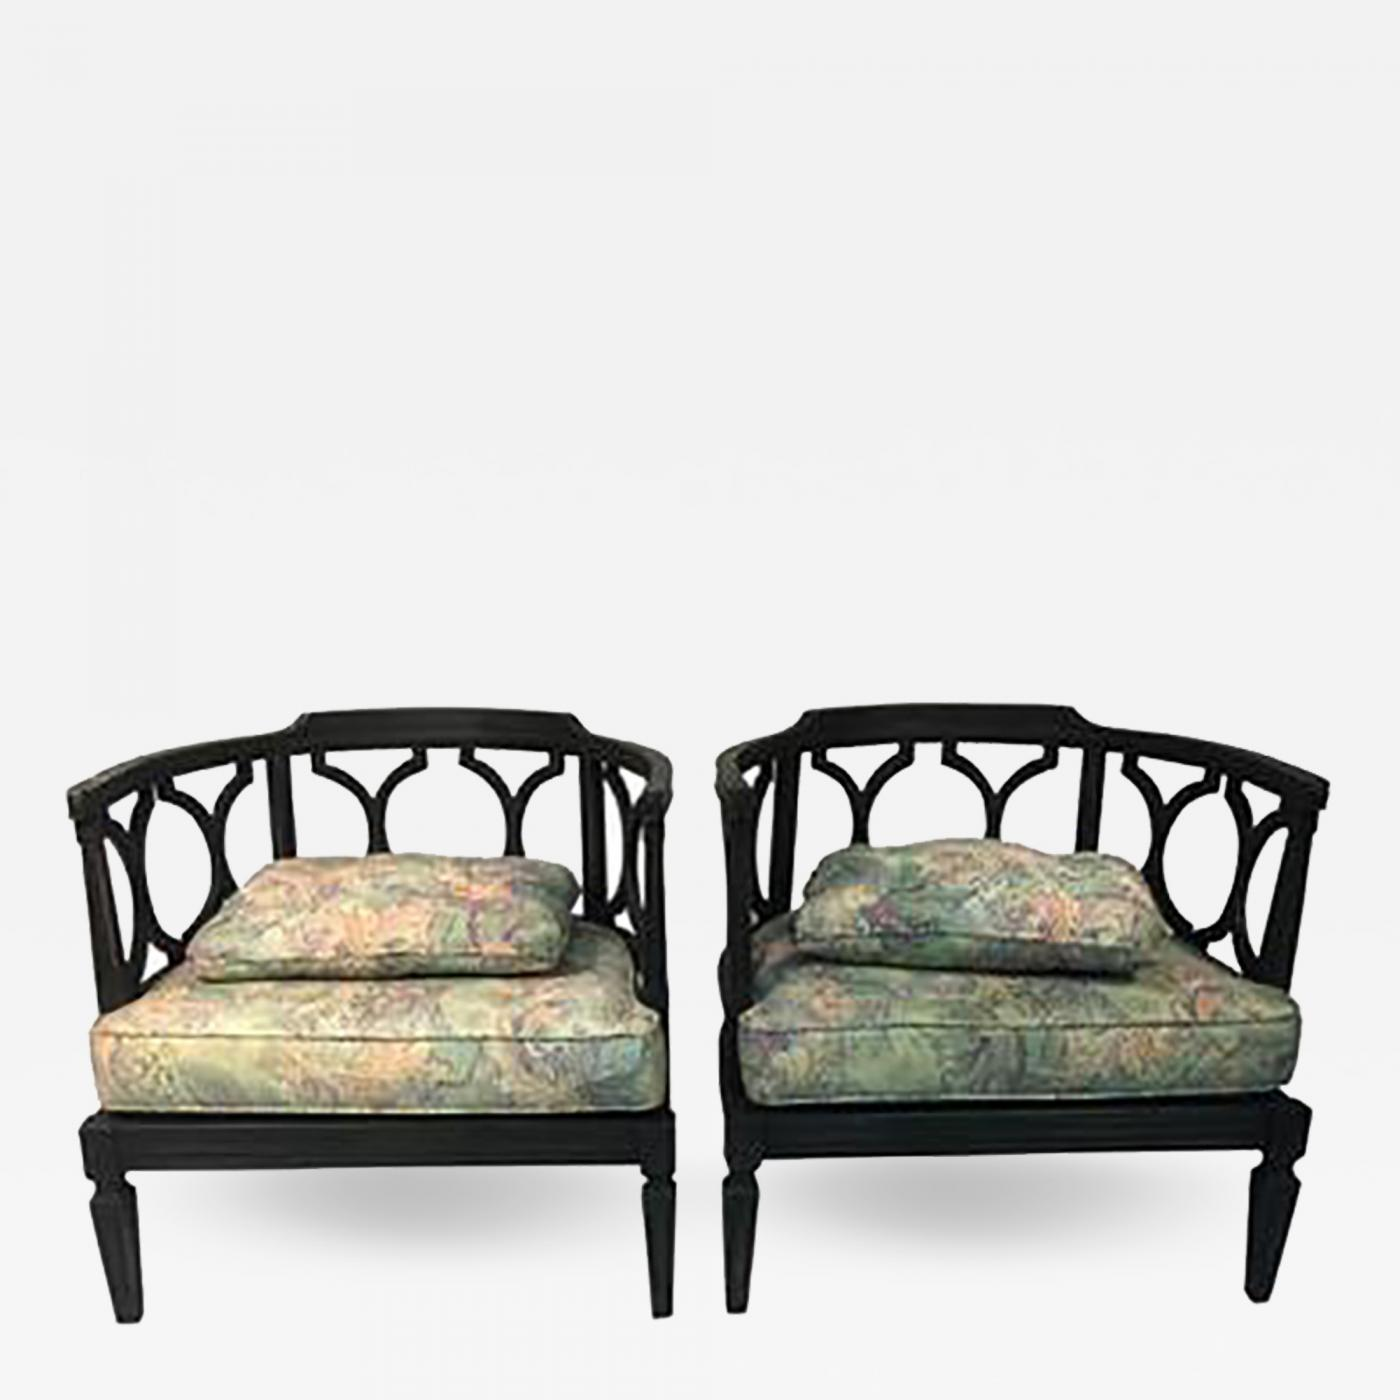 ... Inspired Hollywood Regency Chairs. More Images Want More Images?